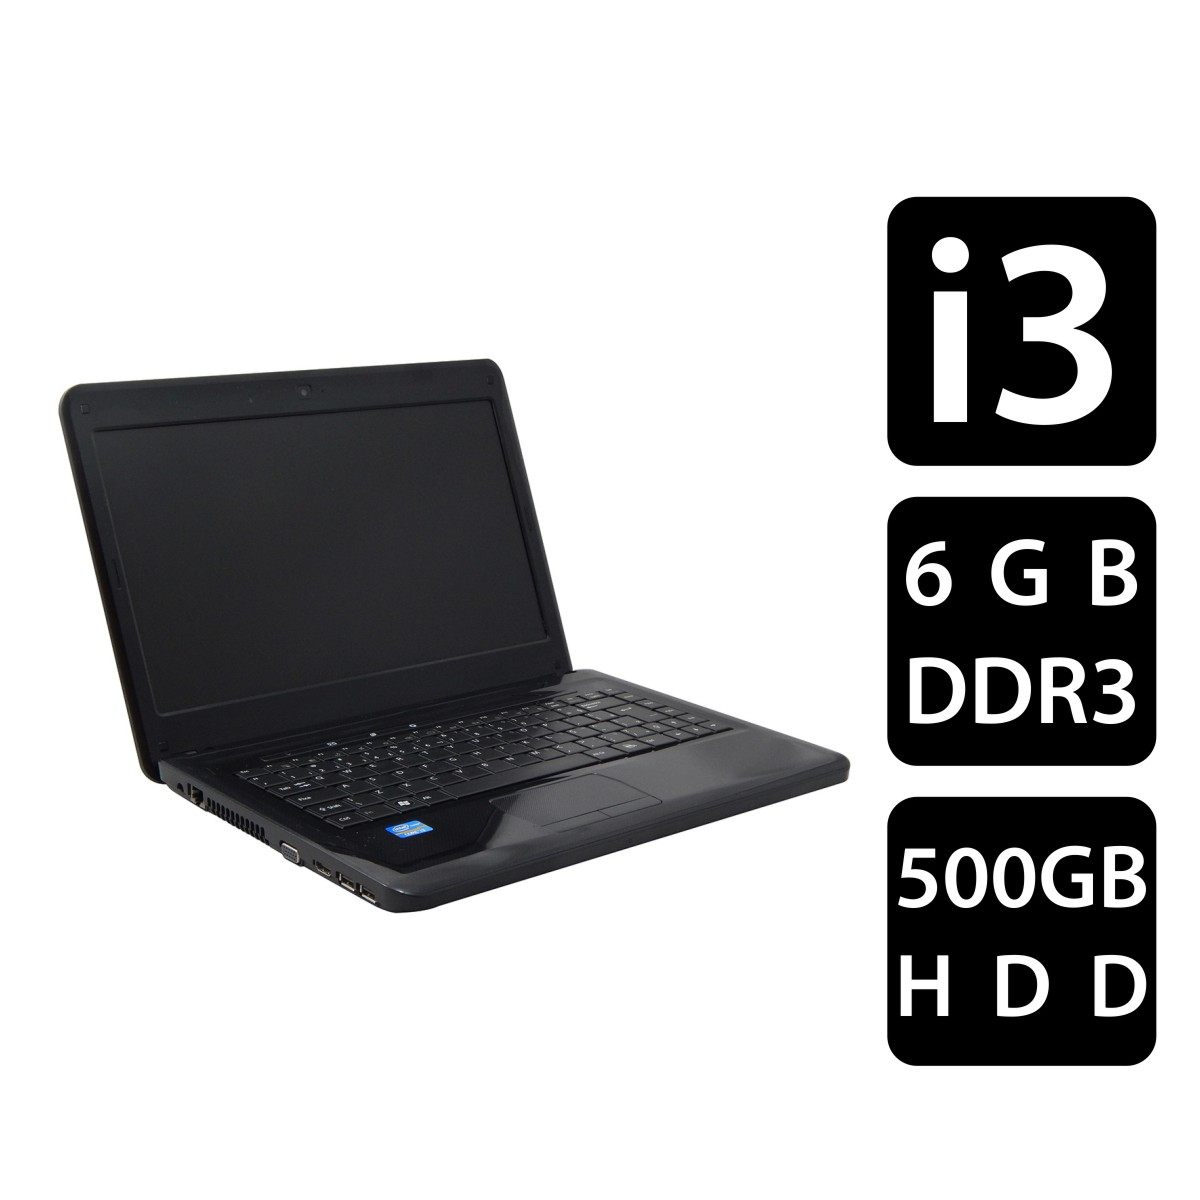 NOTEBOOK POSITIVO SIM 7520 I3-2310 6G 500gb - Seminovo